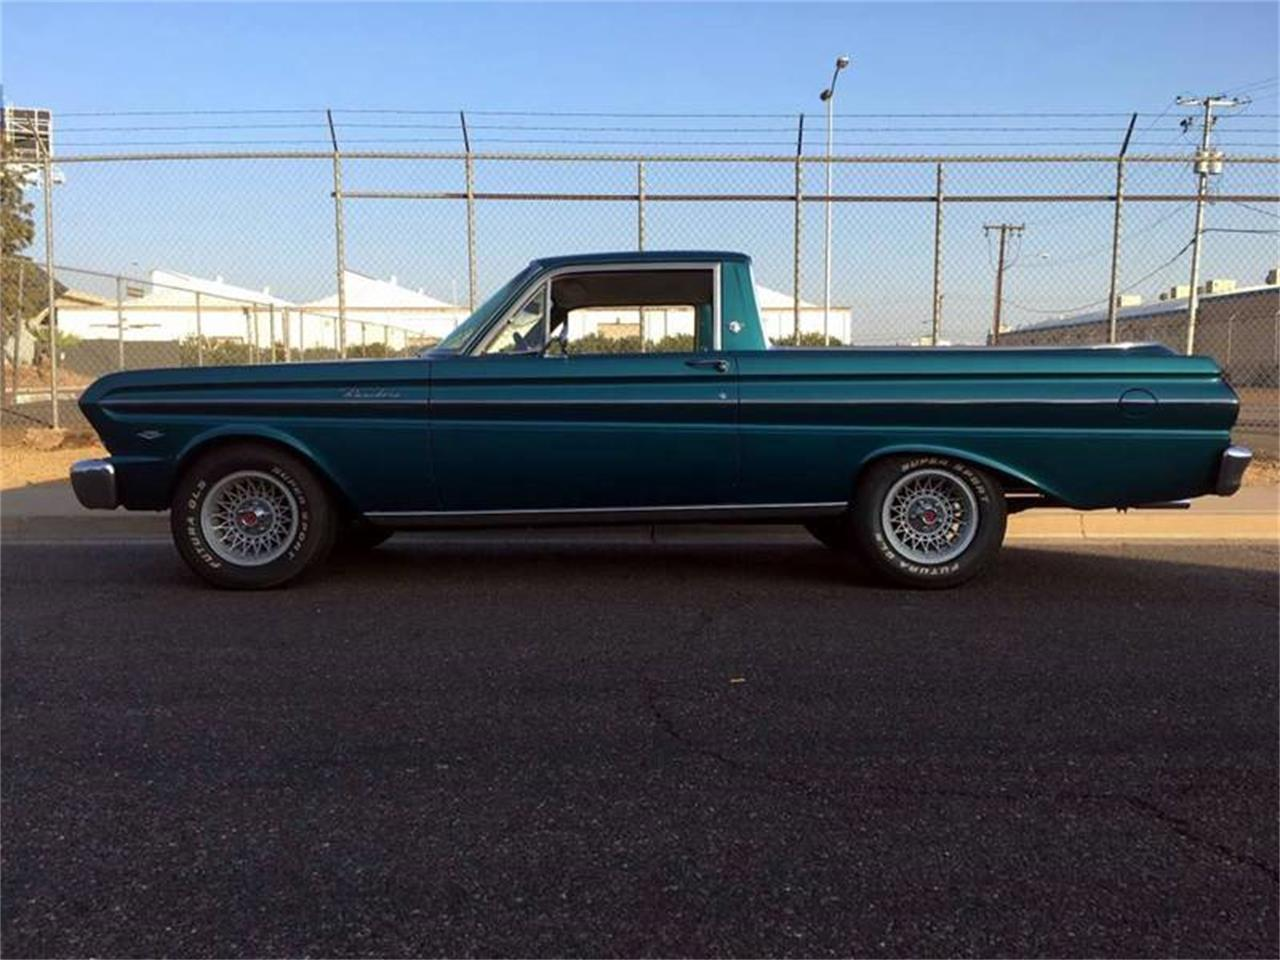 Large picture of 65 ranchero nbeh